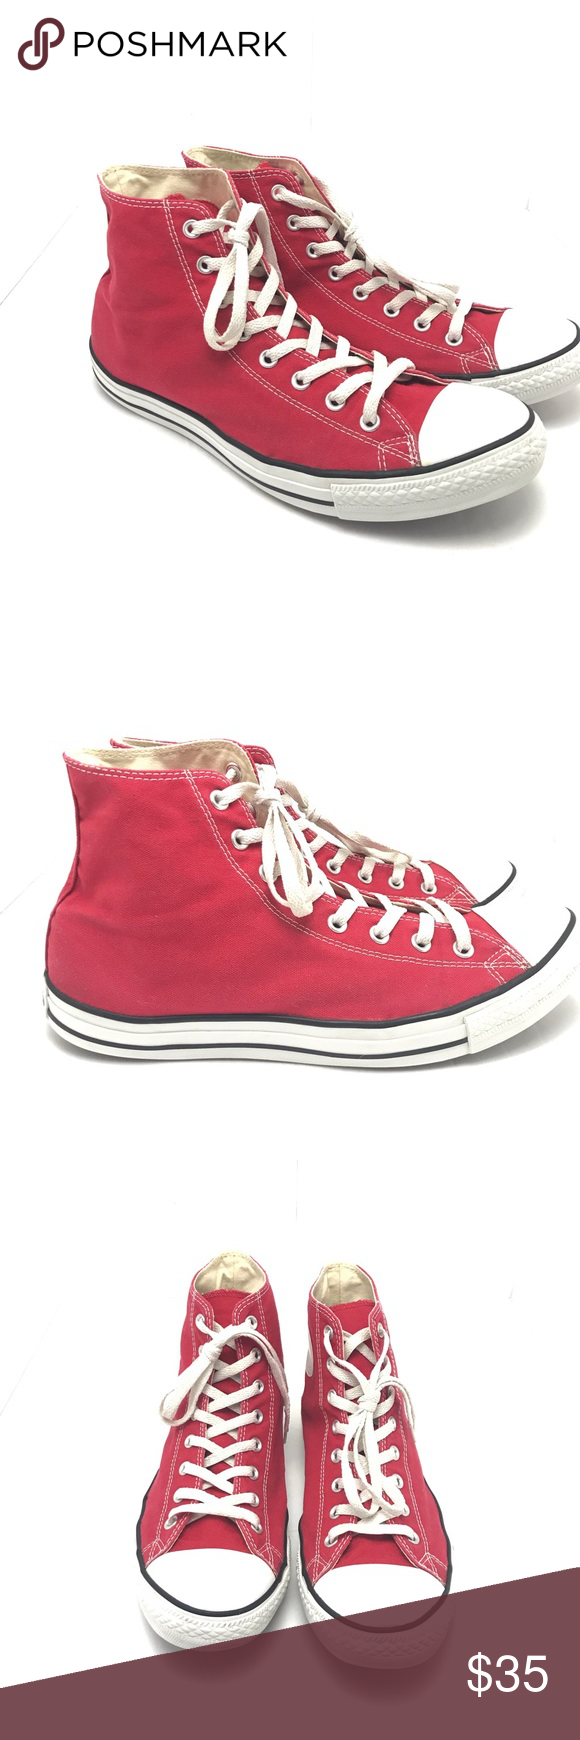 Red Chuck Taylor Converse high Tops